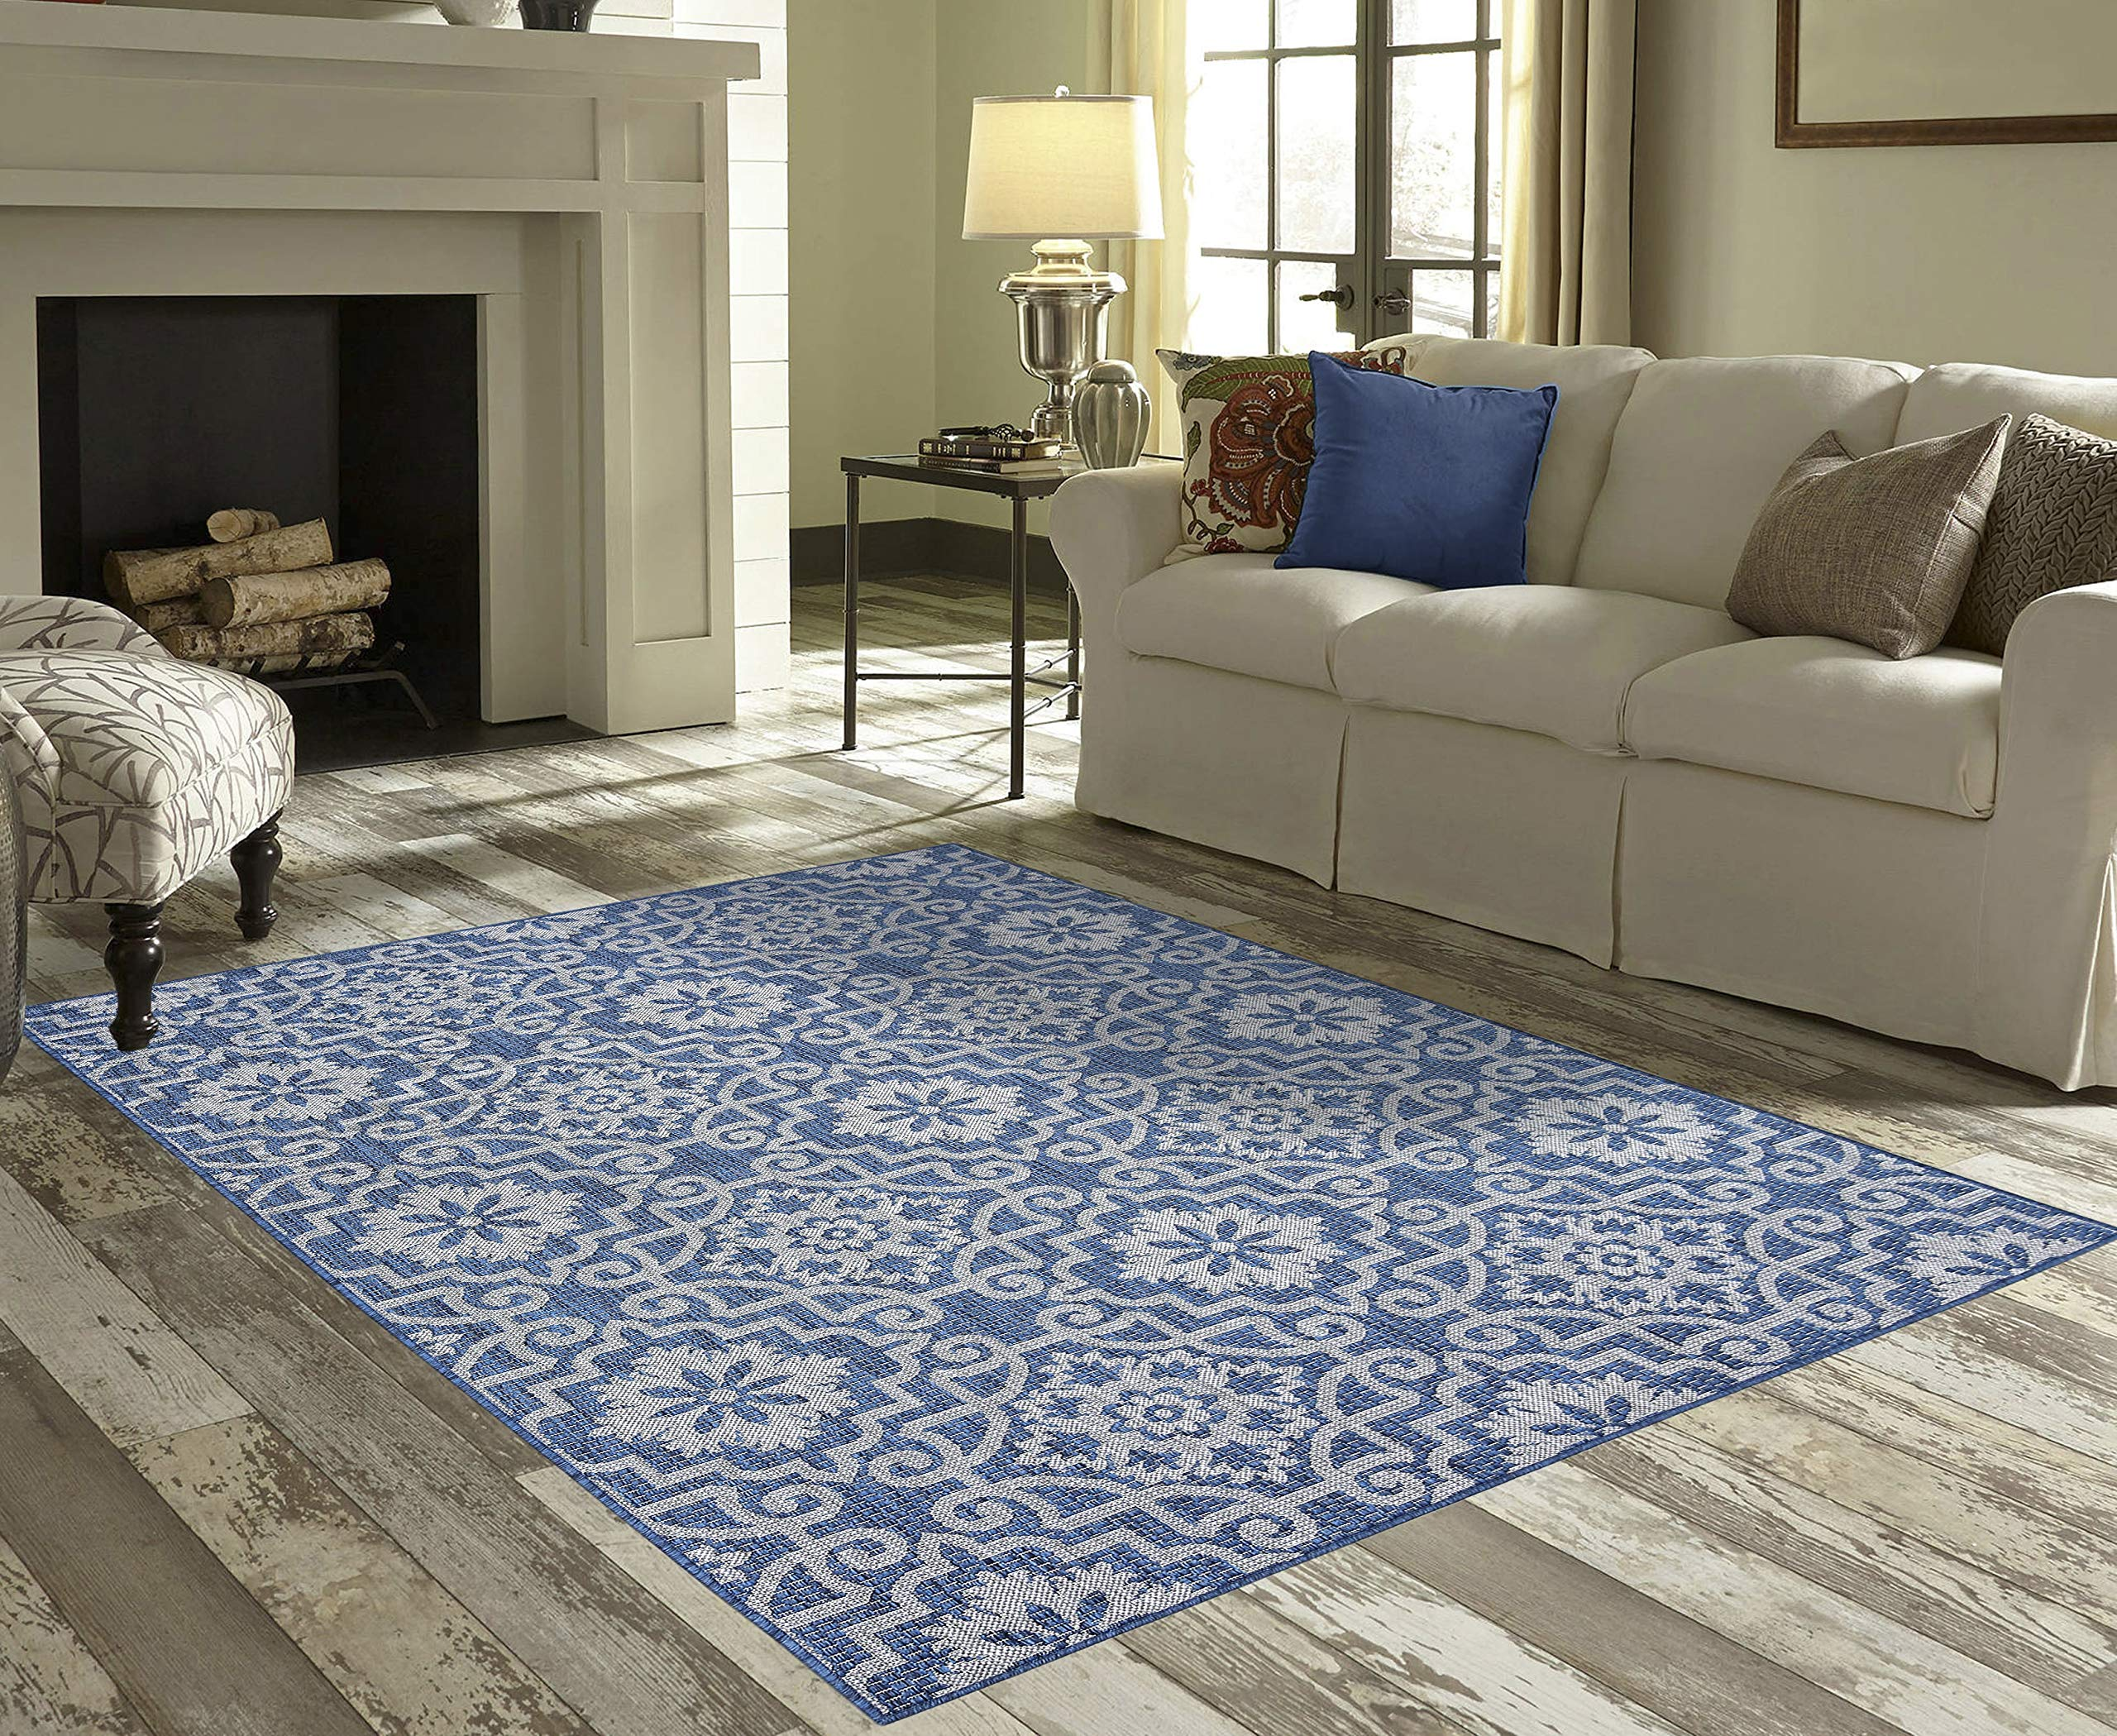 Priyate Florida Collection All Weather Indoor/Outdoor Moro Tile Rug for Living Room, Bedroom, and Dining Room (7'10'' x 10', Blue)